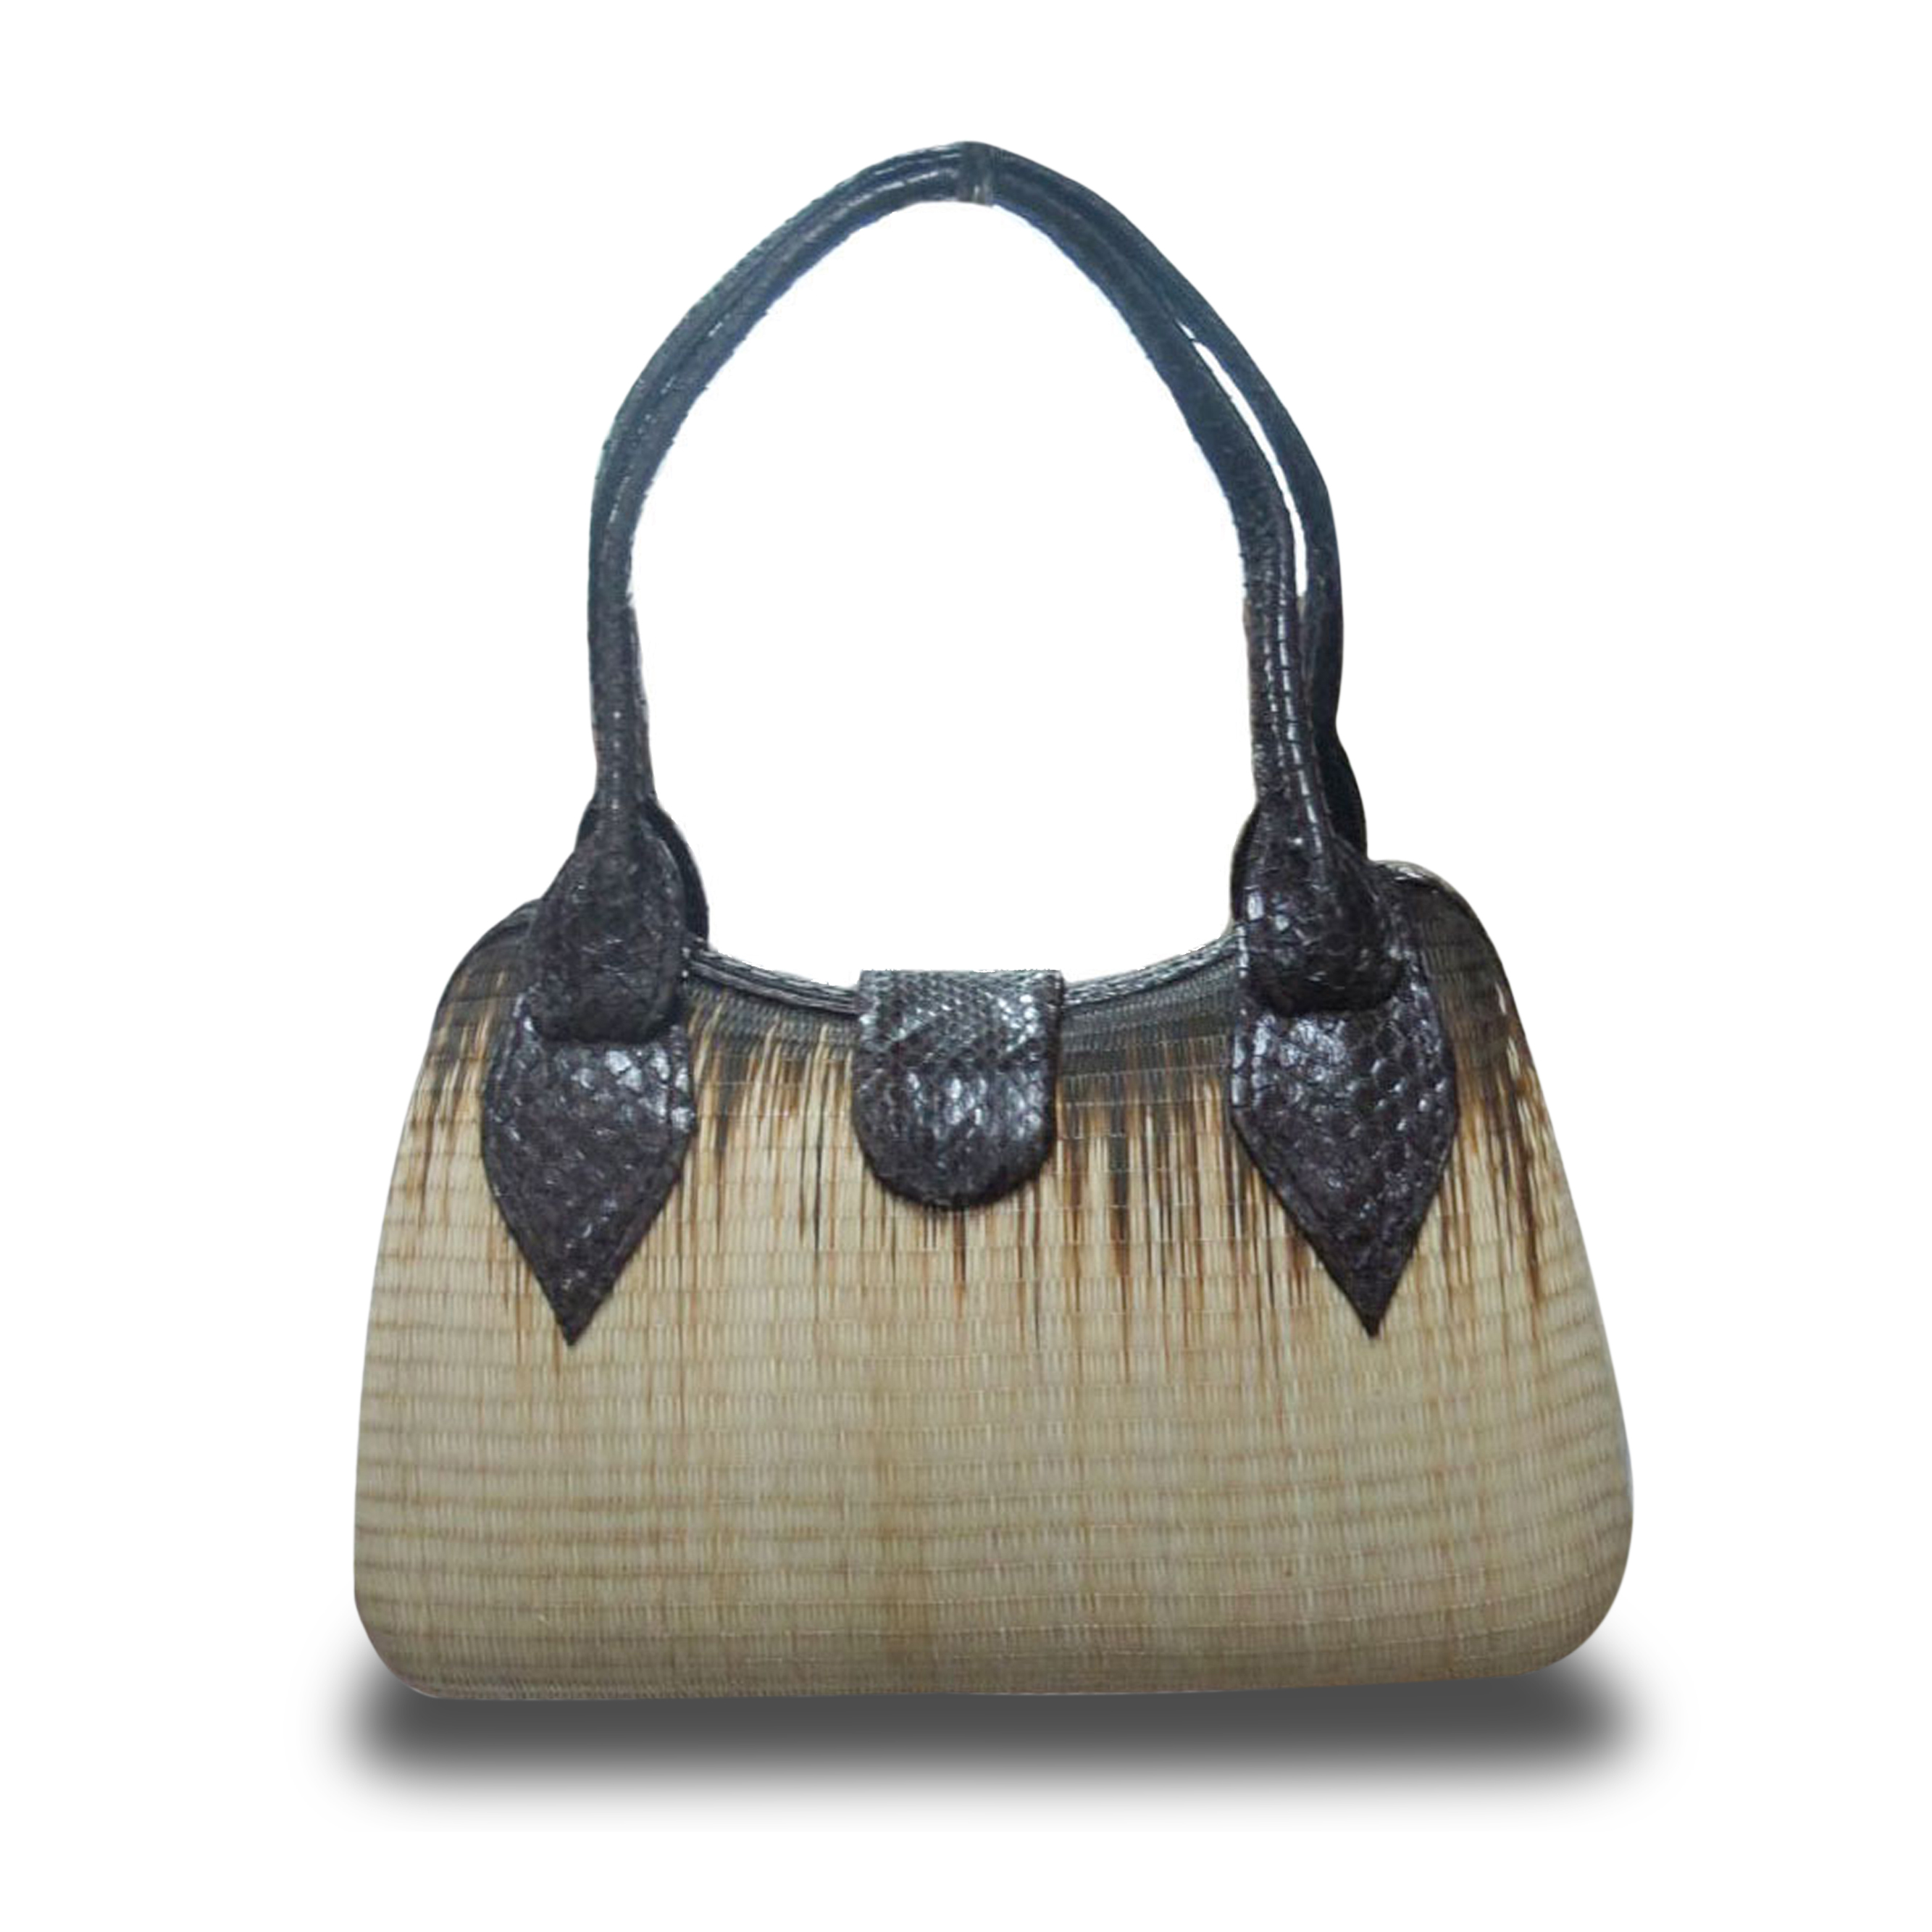 Handbag made of natural buntal fiber